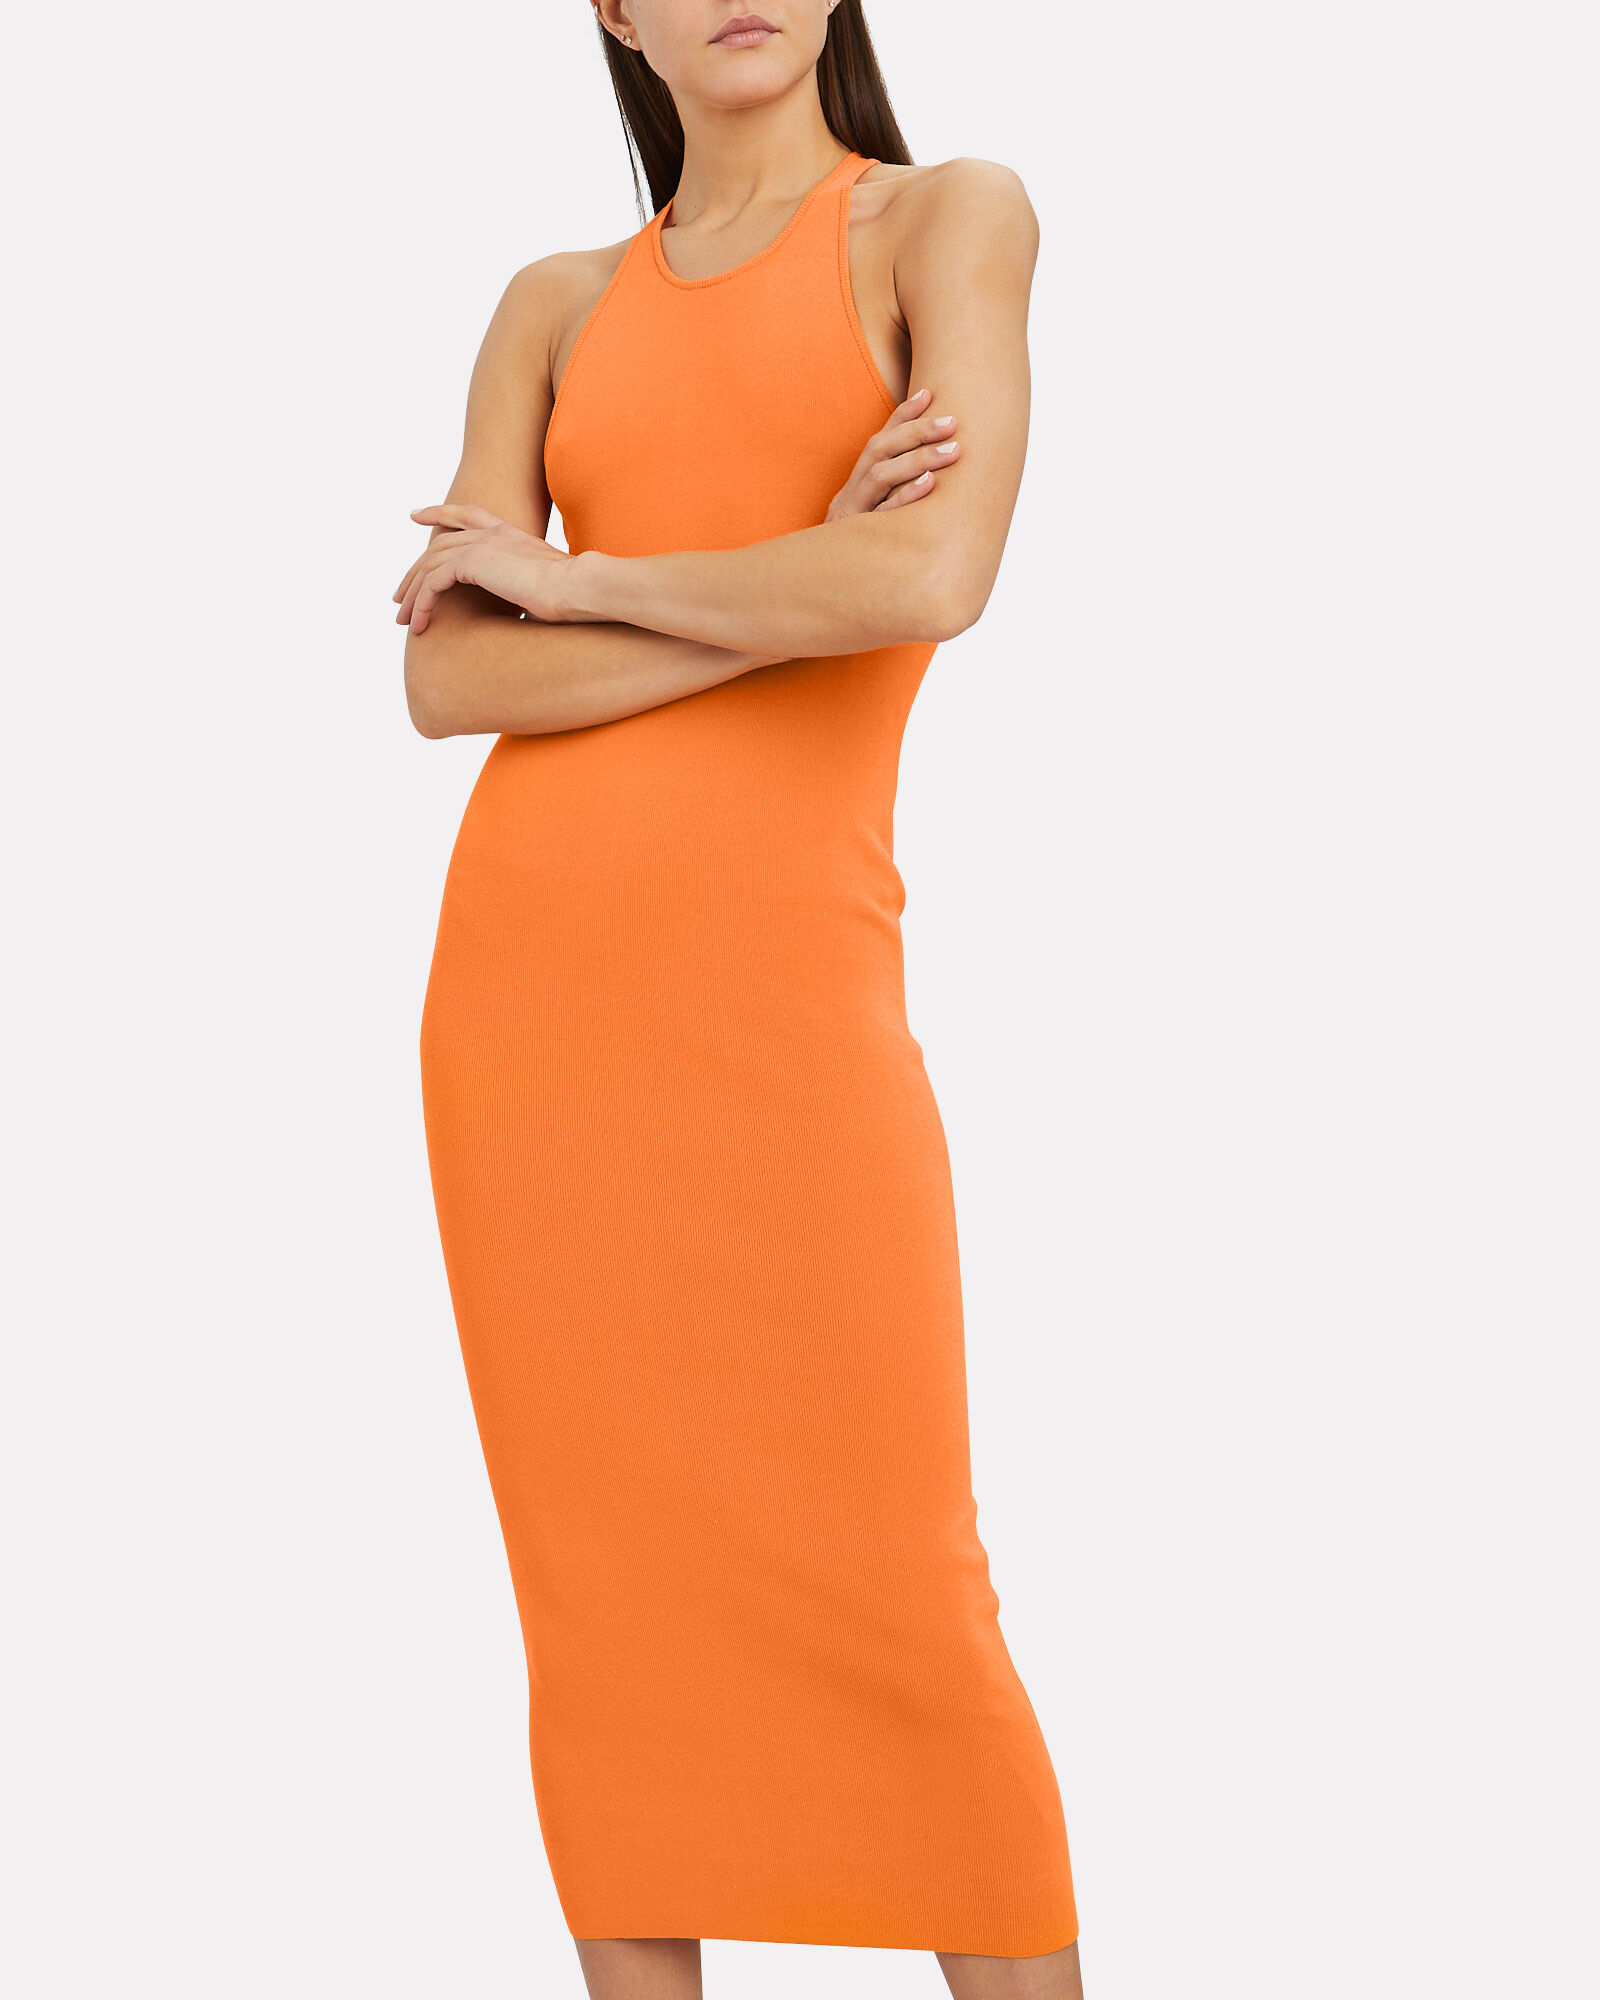 Marc Rib Knit Sleeveless Dress, ORANGE, hi-res